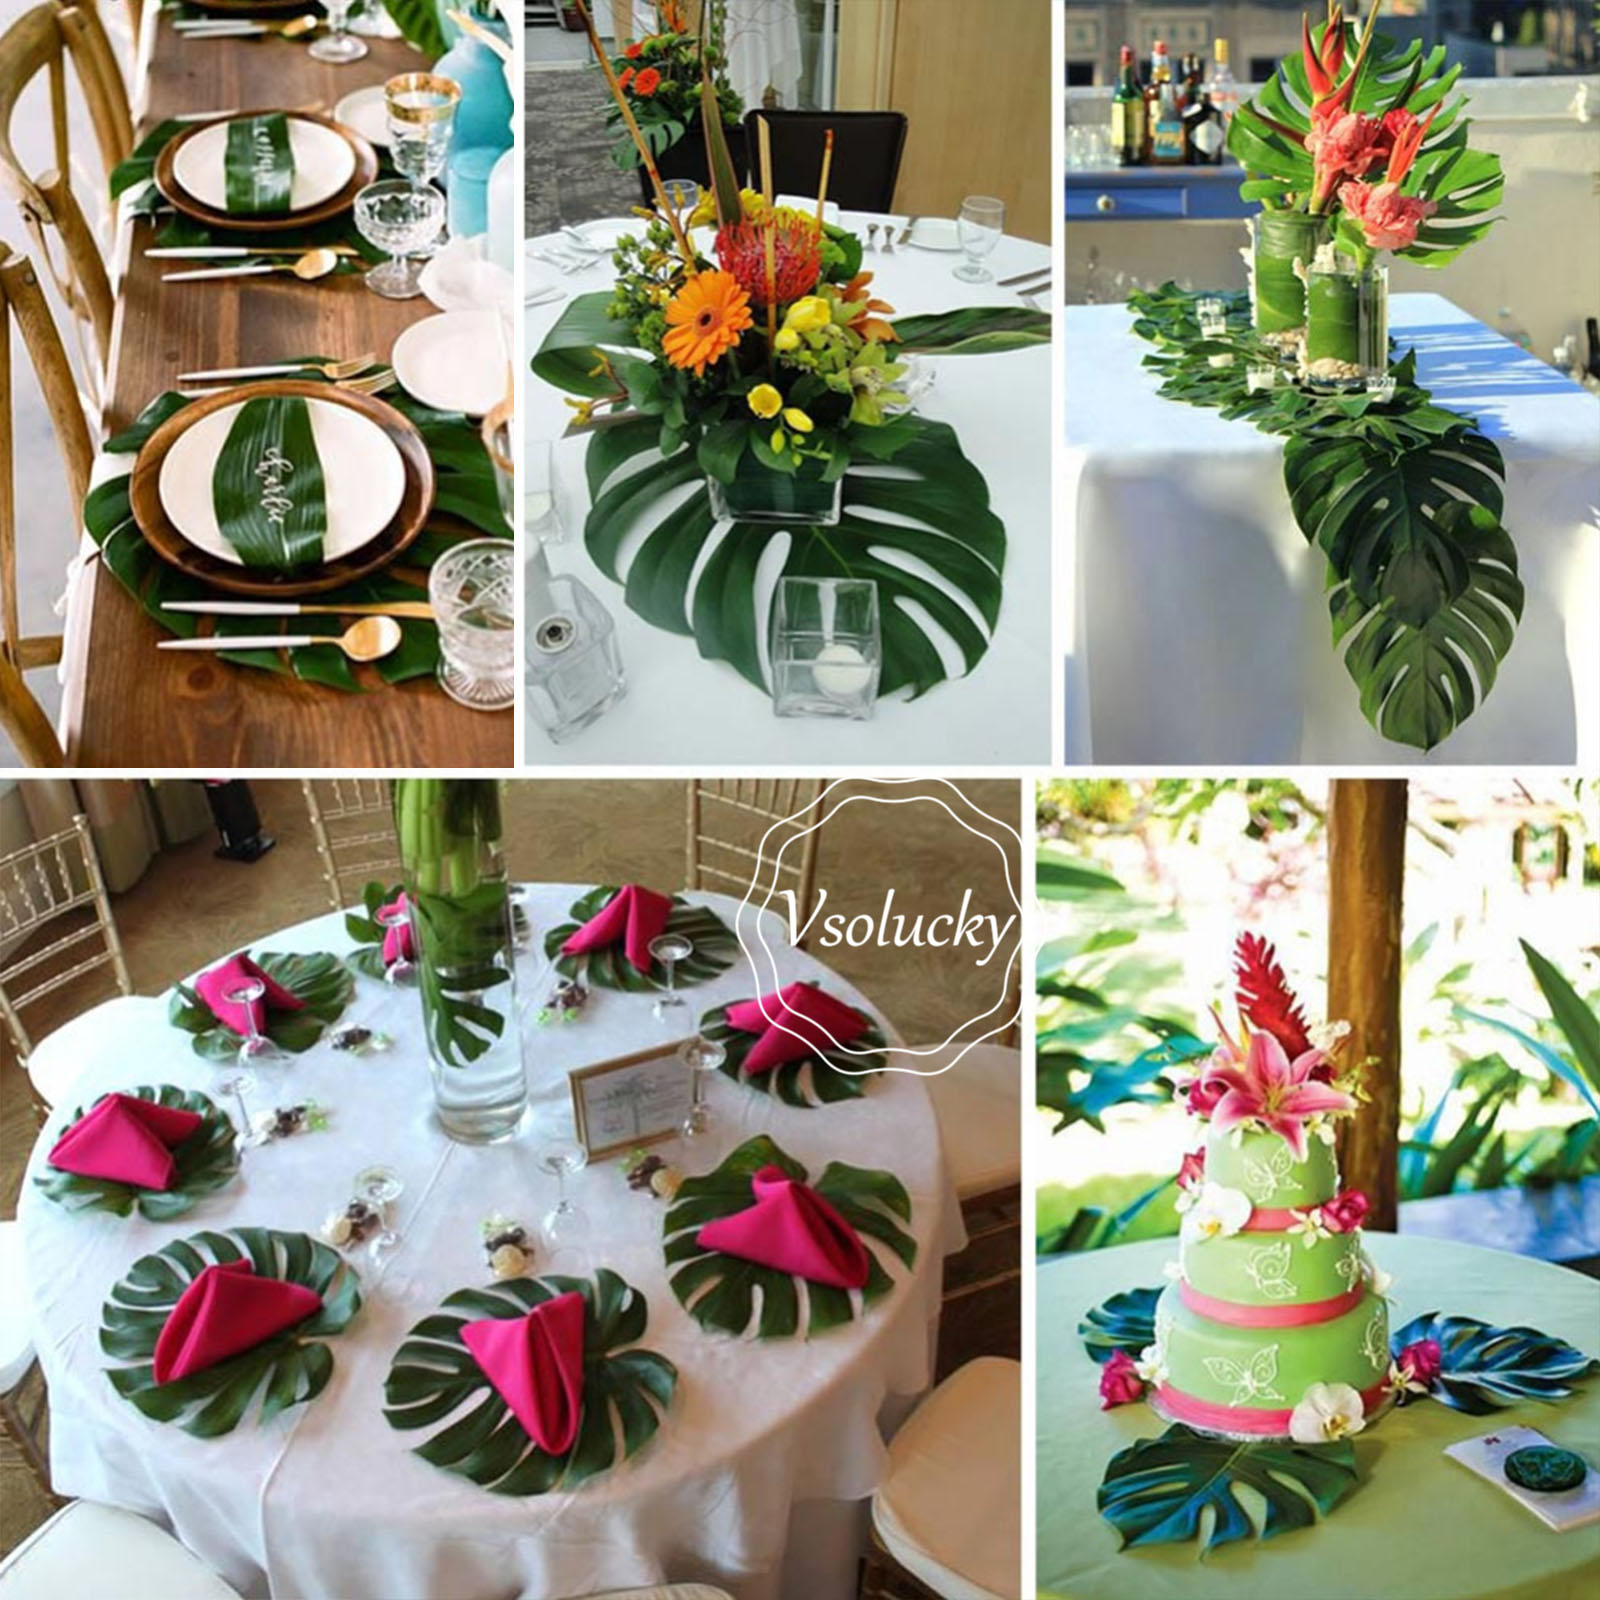 cocktails ideas with photos a decor used low props themed la decorations inspiration tropical tiki needs blog fancy here anyway tableware some and who dress hawaiian fun s hawaii for beach few cost party i